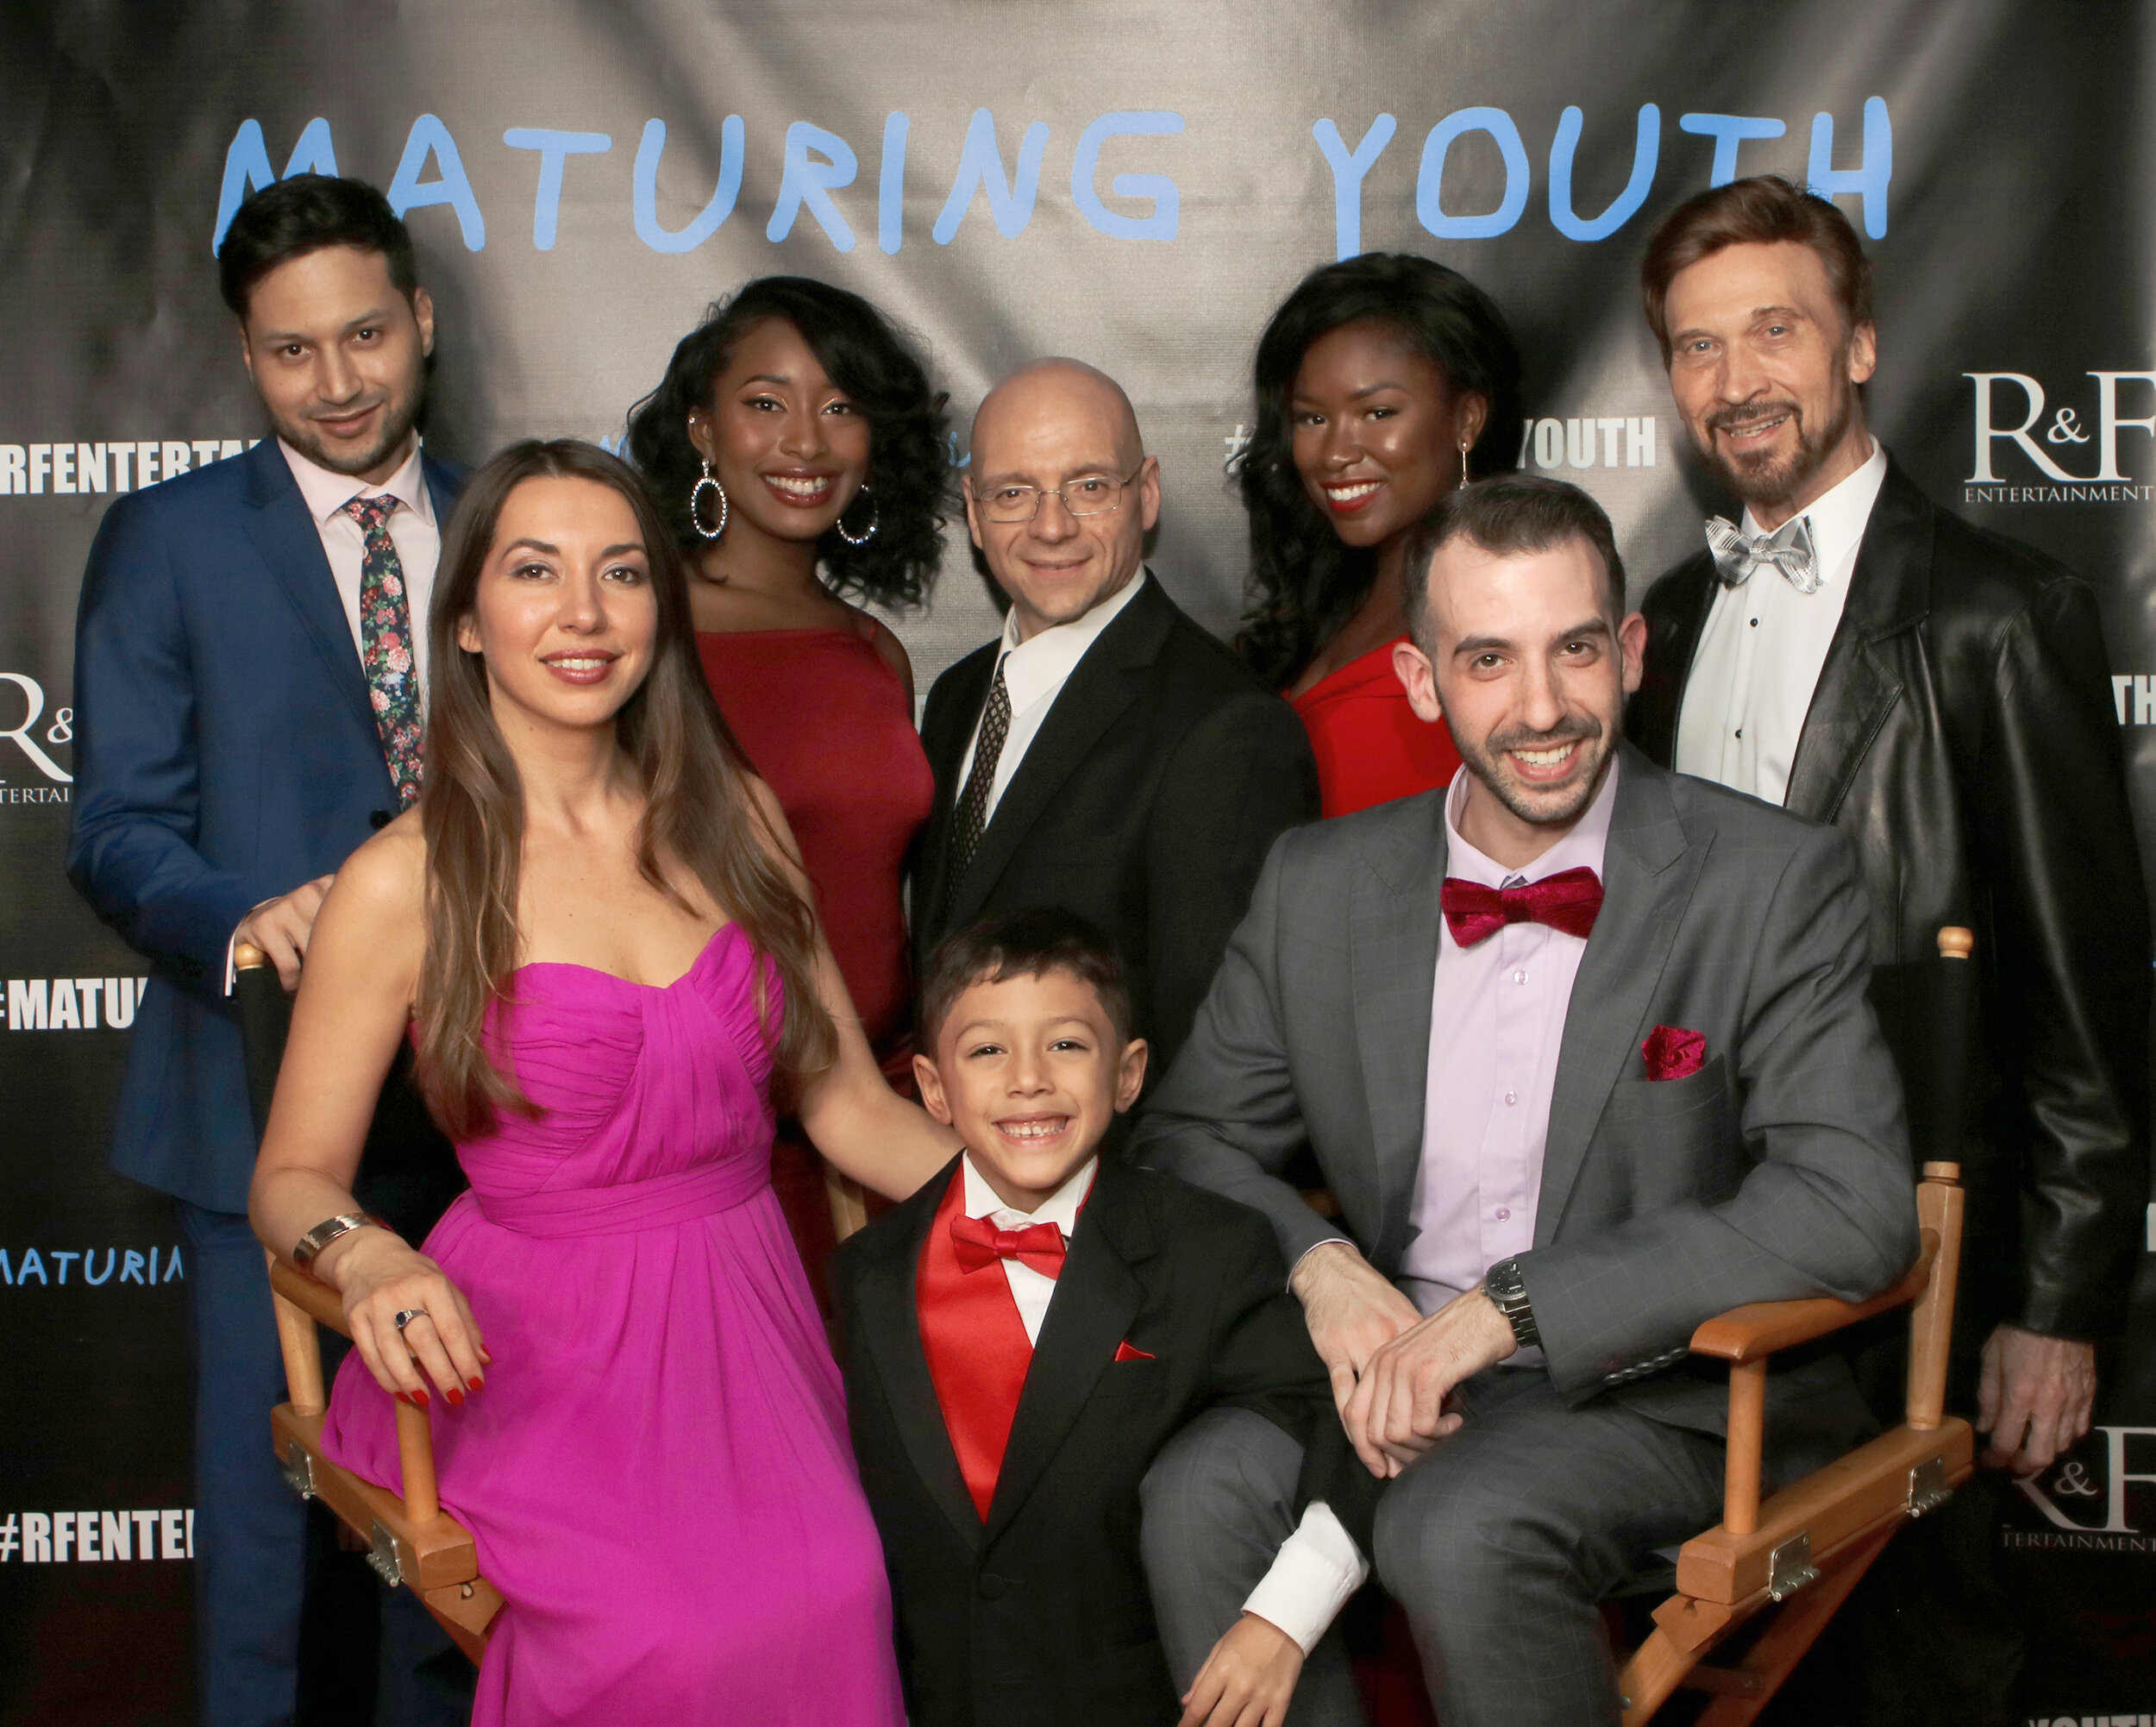 L-R Albee Castro, Kim Paris, Rae'l Ba, Joshua Saint Leger, Michael Paladine, Darleen Rae Fontaine, Sean A. Kaufman, and Terrence Keene at the world premiere in New York City on October 21, 2018    Courtesy of RNF